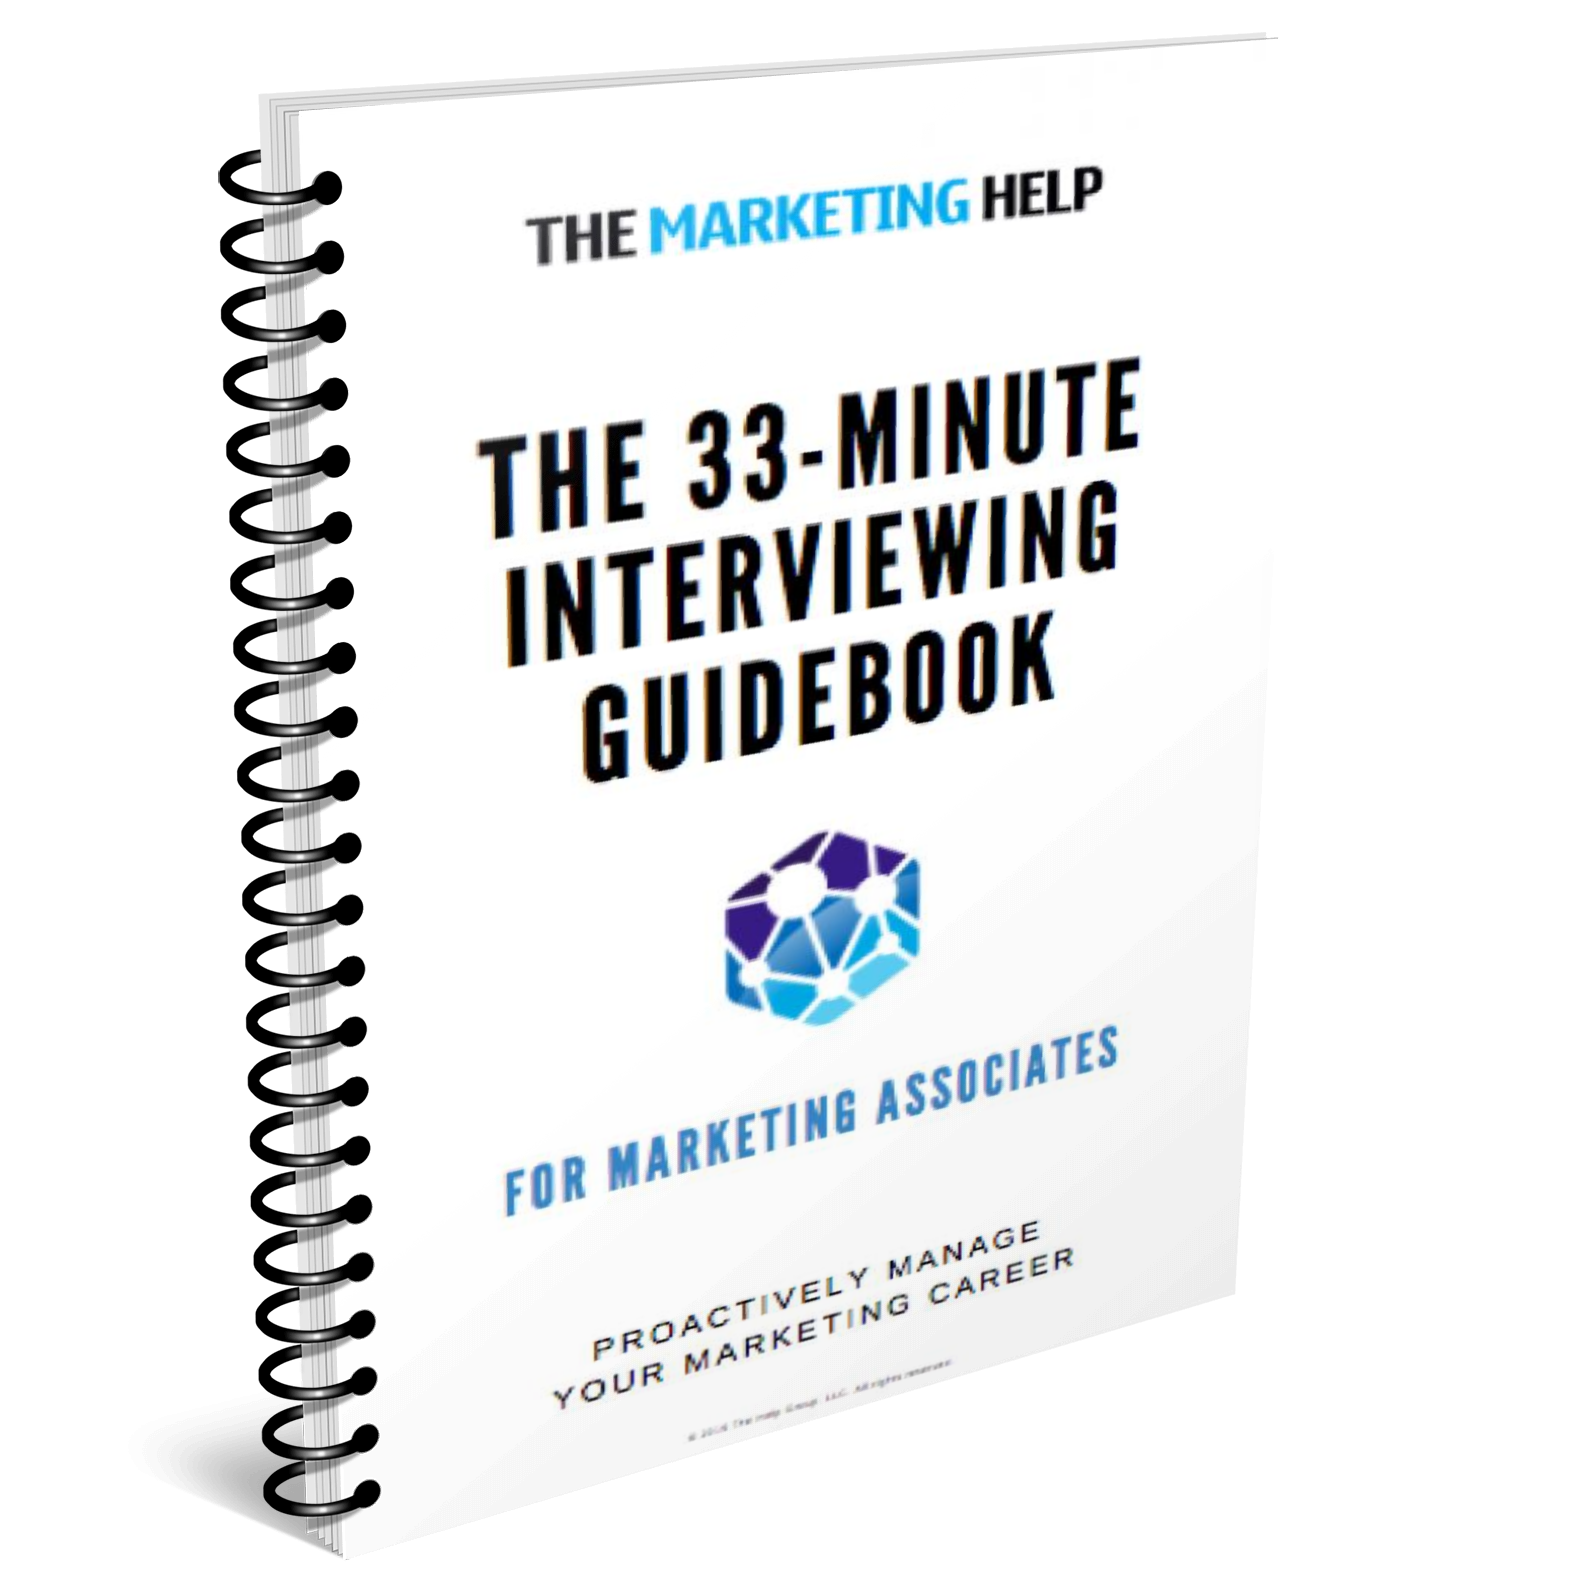 The 33-Minute Career Path Guidebook - Need a better understanding of common marketing career paths? Here's your shortcut up the trail…Our 33-Minute Guidebooks provide mastery in various career subjects in only — you guessed it — about half an hour.